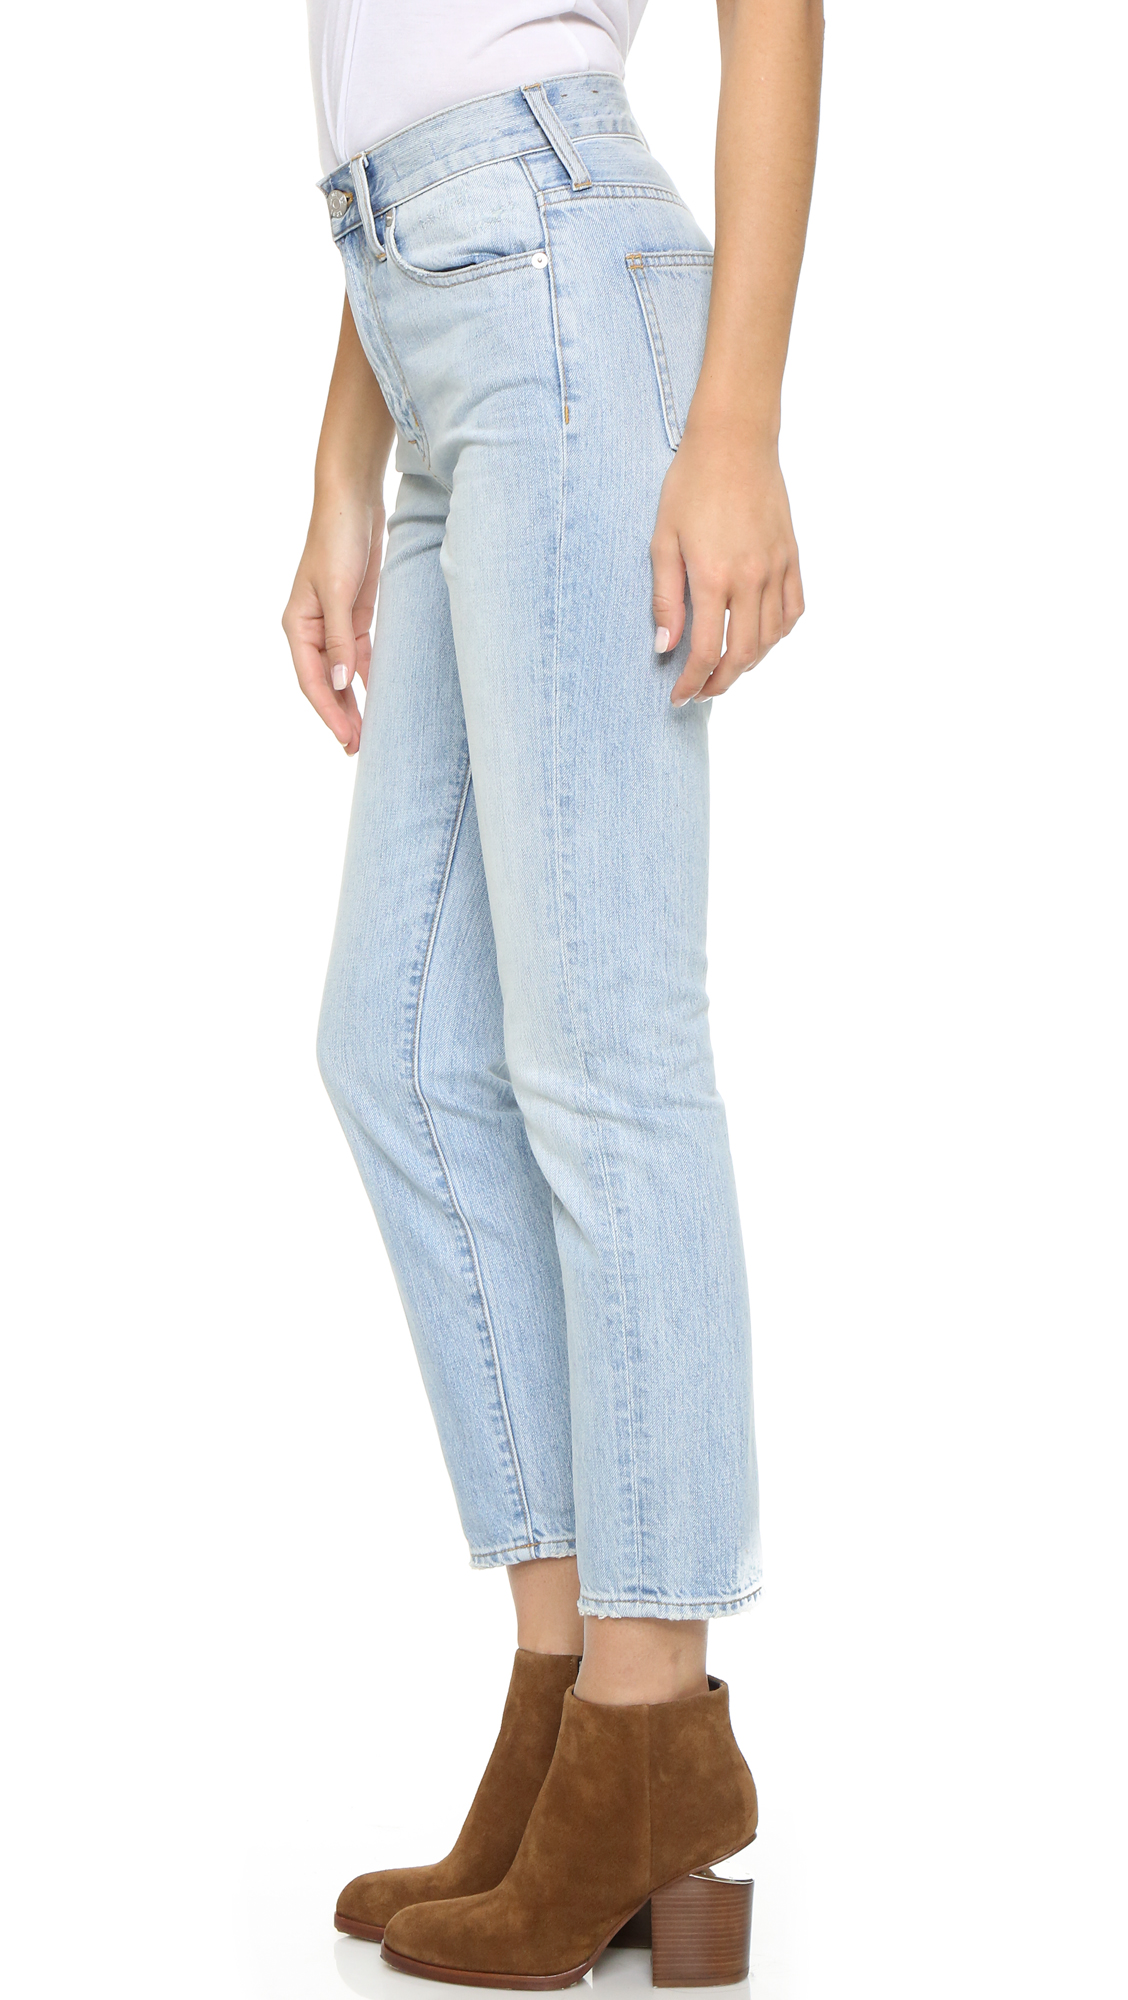 803d925ad82 Madewell Perfect Summer Jeans